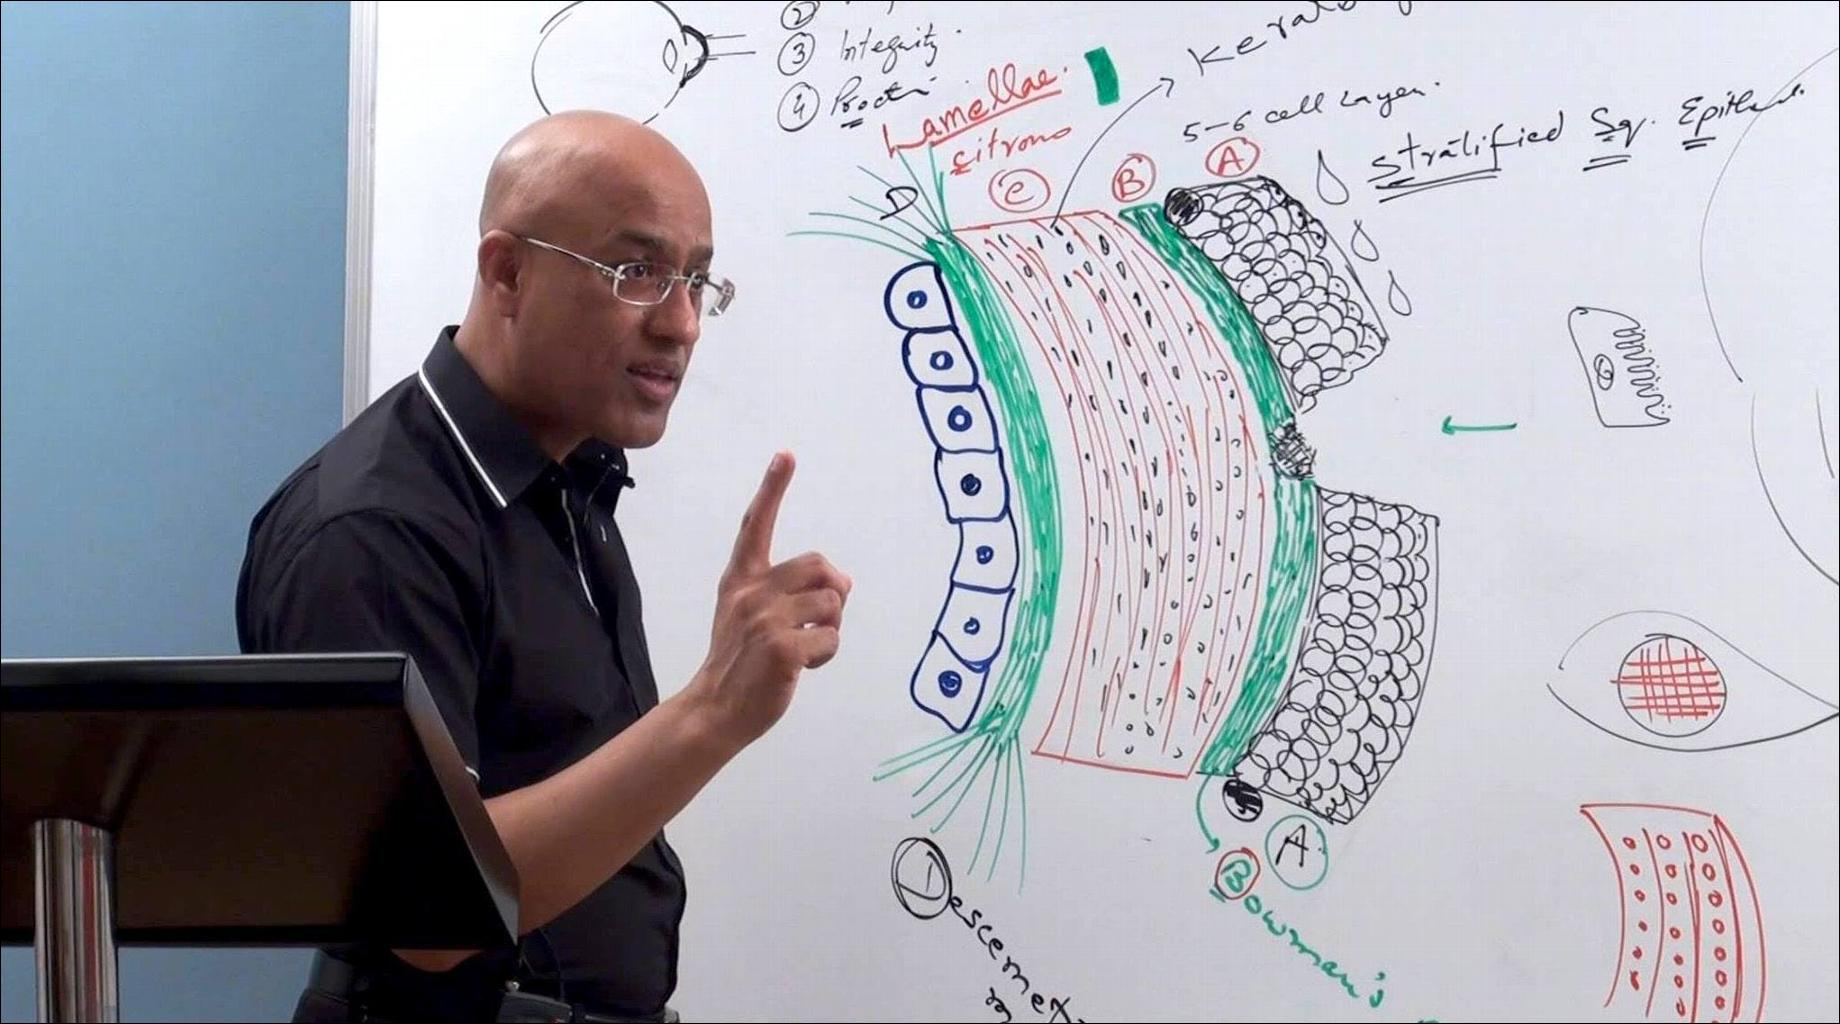 dr-najeeb-lectures-1-month-access-full-version-3363838.jpg